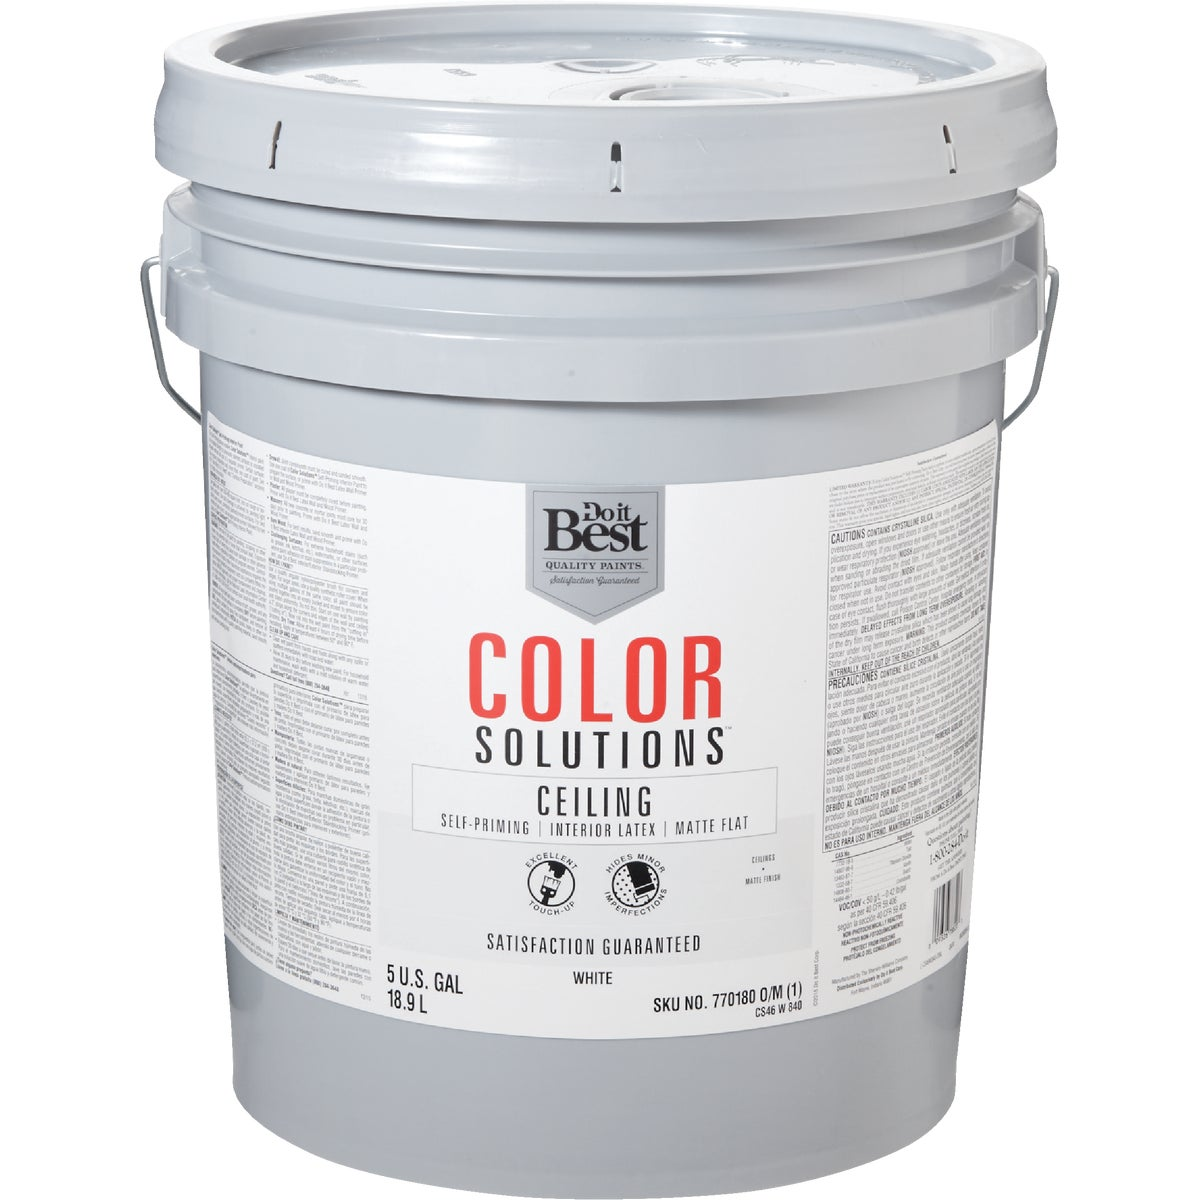 FLAT WHITE CEILING PAINT - CS46W0840-20 by Do it Best